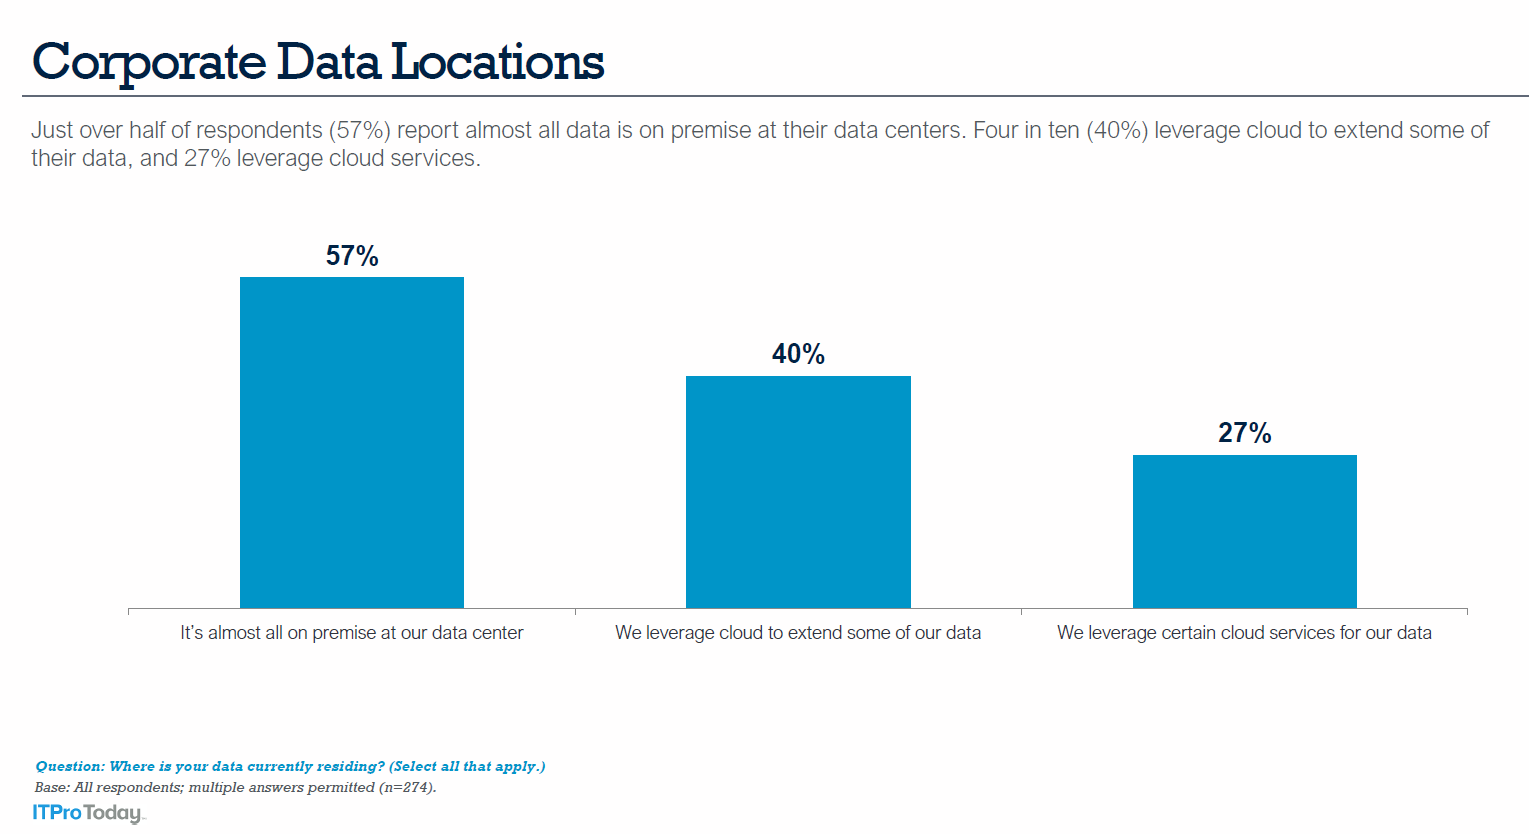 Corporate_Data_Locations_57% on-prem_40% cloud_27%.PNG